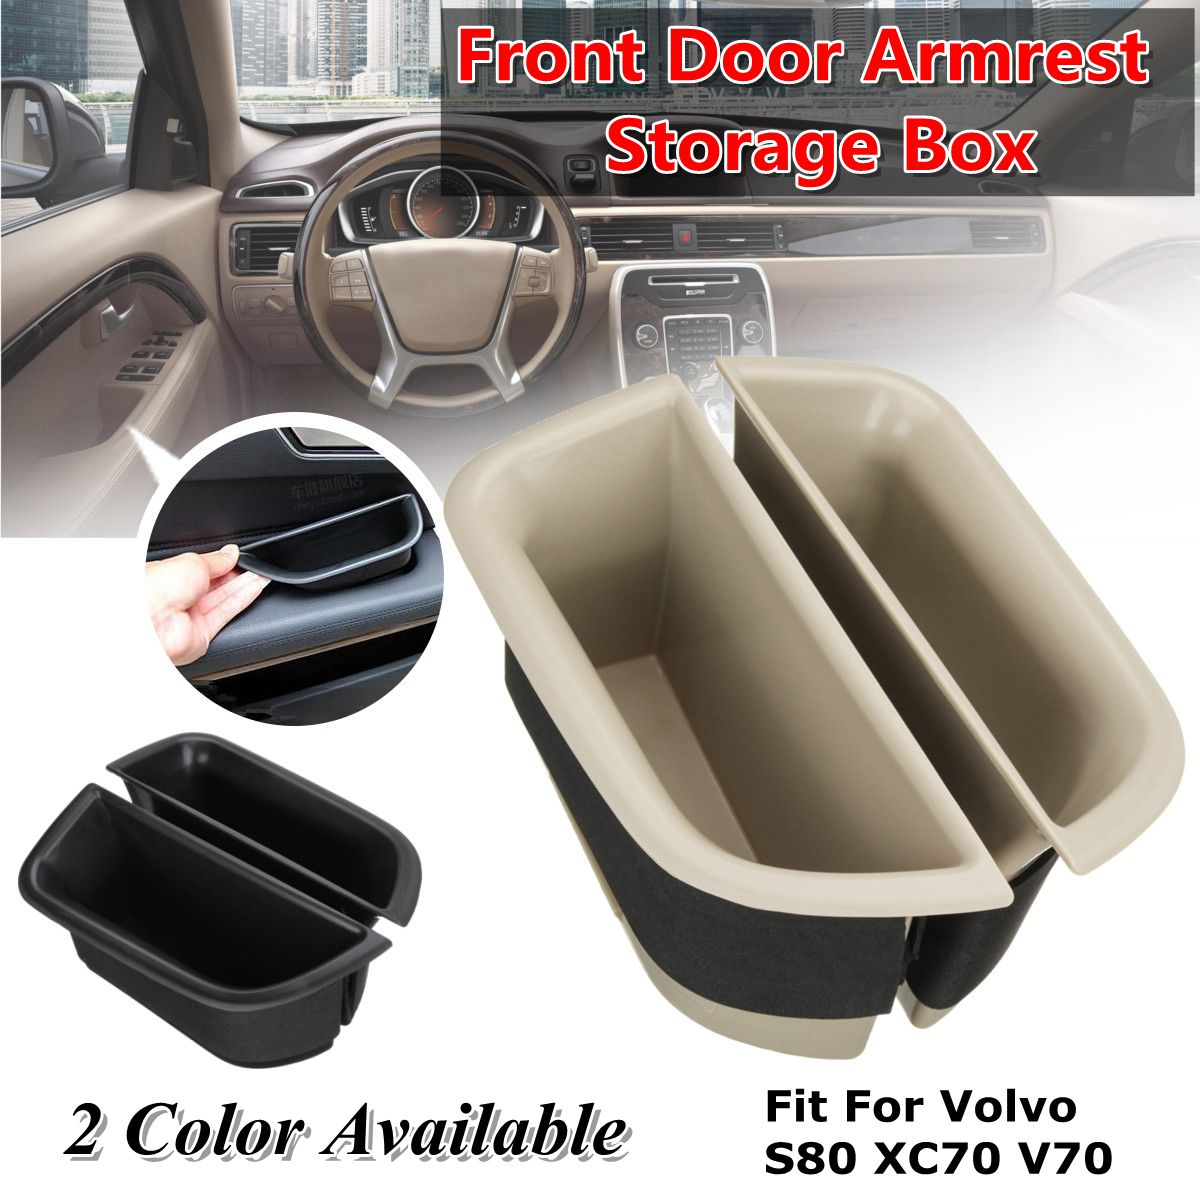 2pcs Car Front Door Armrest Storage Box Container Holder Boxes For Volvo S80 XC70 V70 Car Organizer Accessories Car Styling